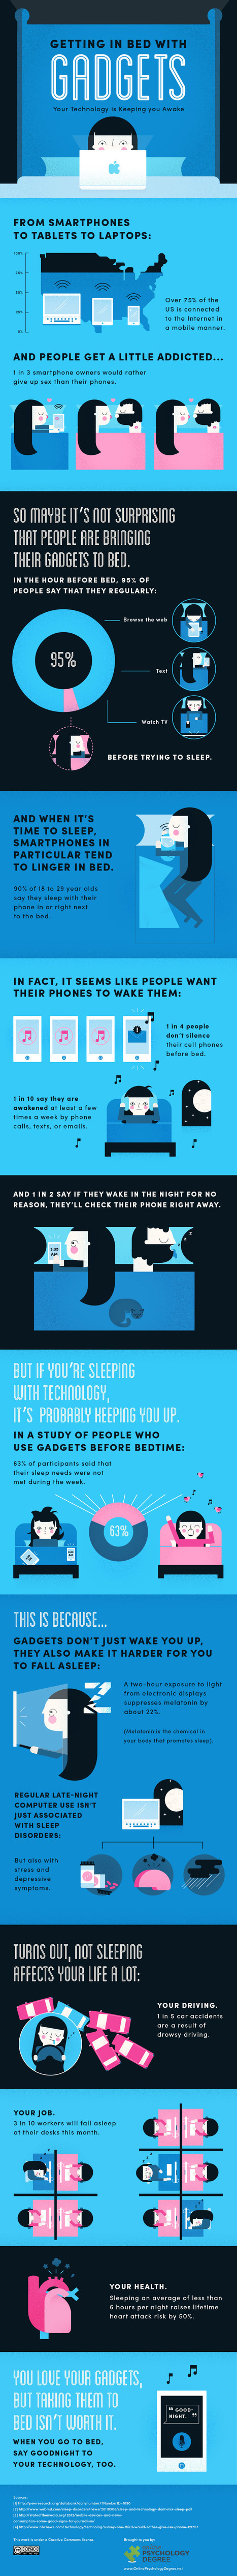 Getting in Bed with Gadgets - The psychology behind why we feel so addicted to our gadgets | ten Hagen on Social Media | Scoop.it